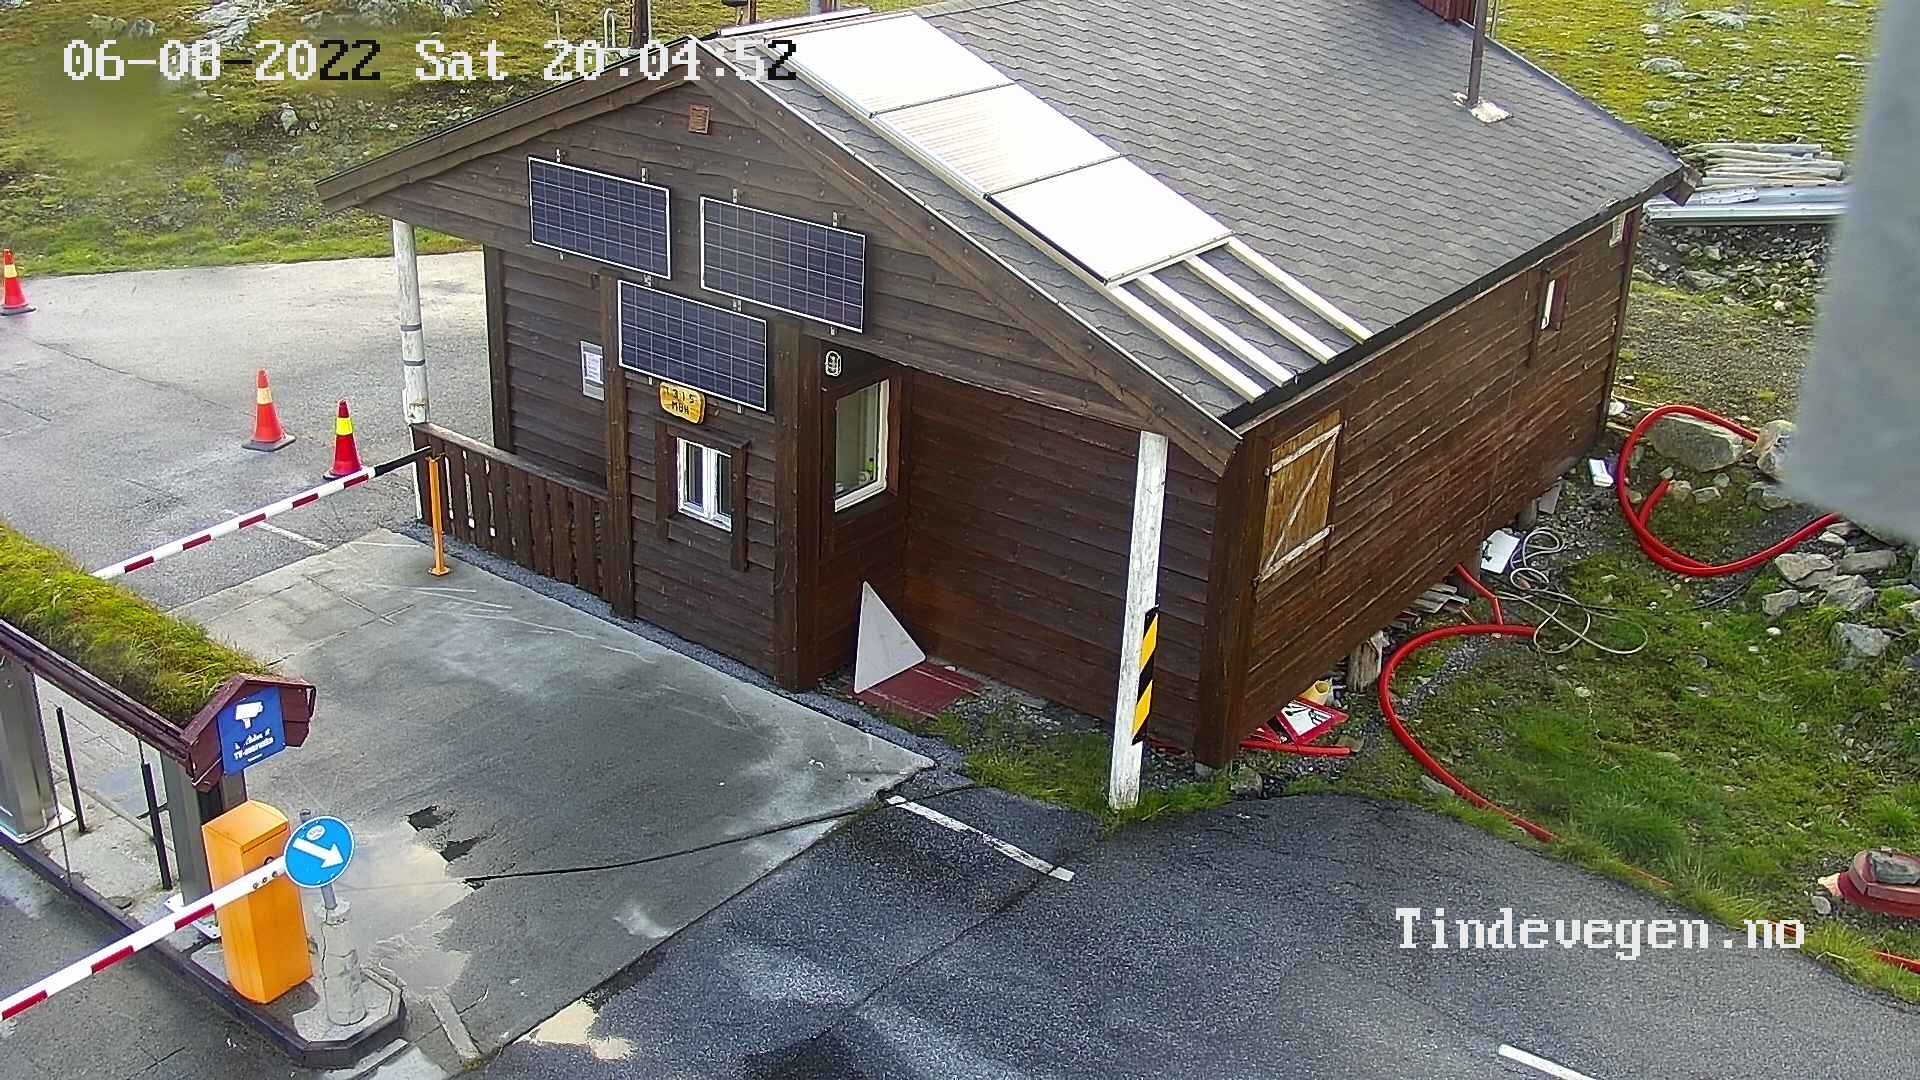 Tindevegen - toll booth